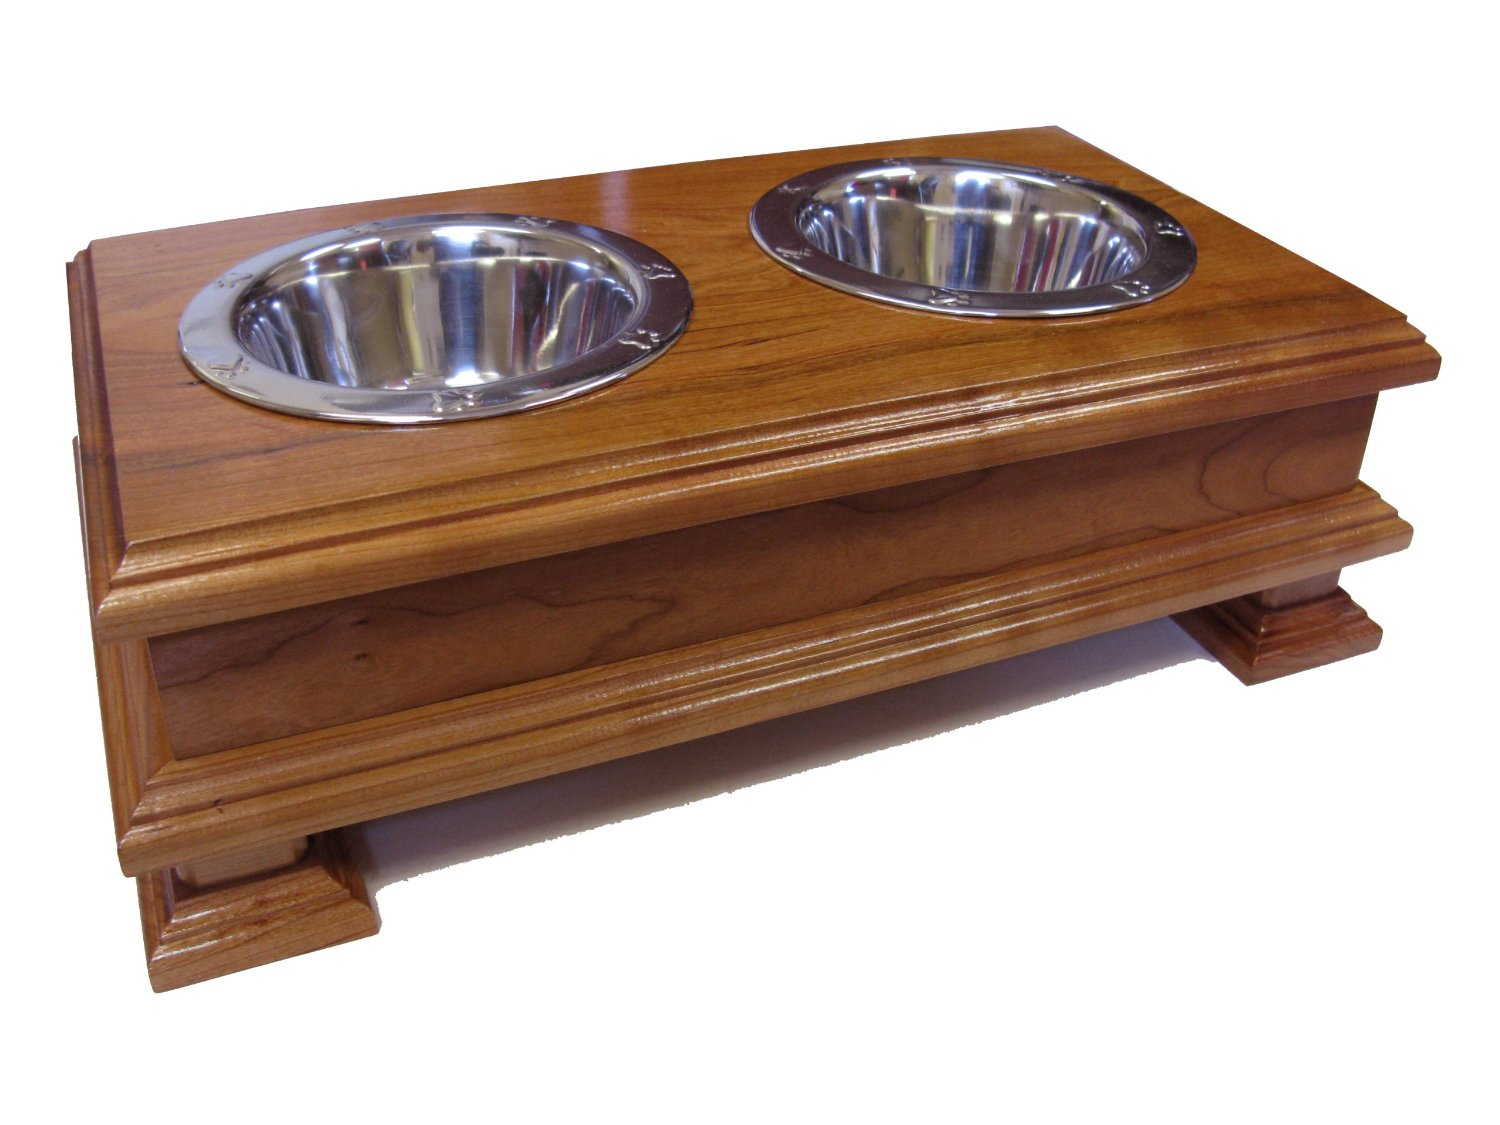 and white this feeder for woodworks or pet stand dark your charm bowls country elevated cat bowl dog fabian promotes posture wooden freestanding rustic on better adds